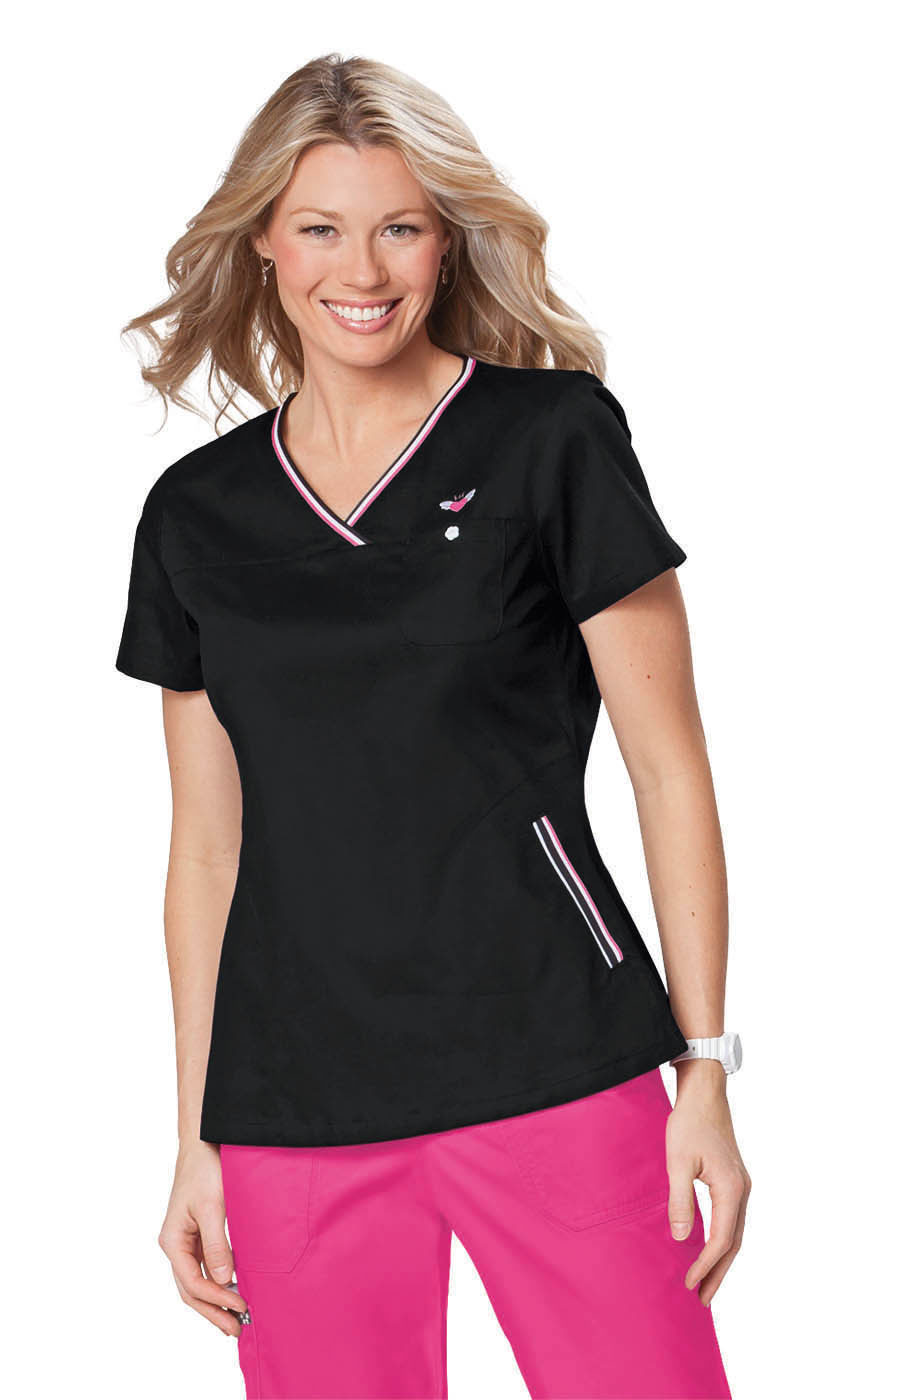 KOI Scrubs - Black and Pink